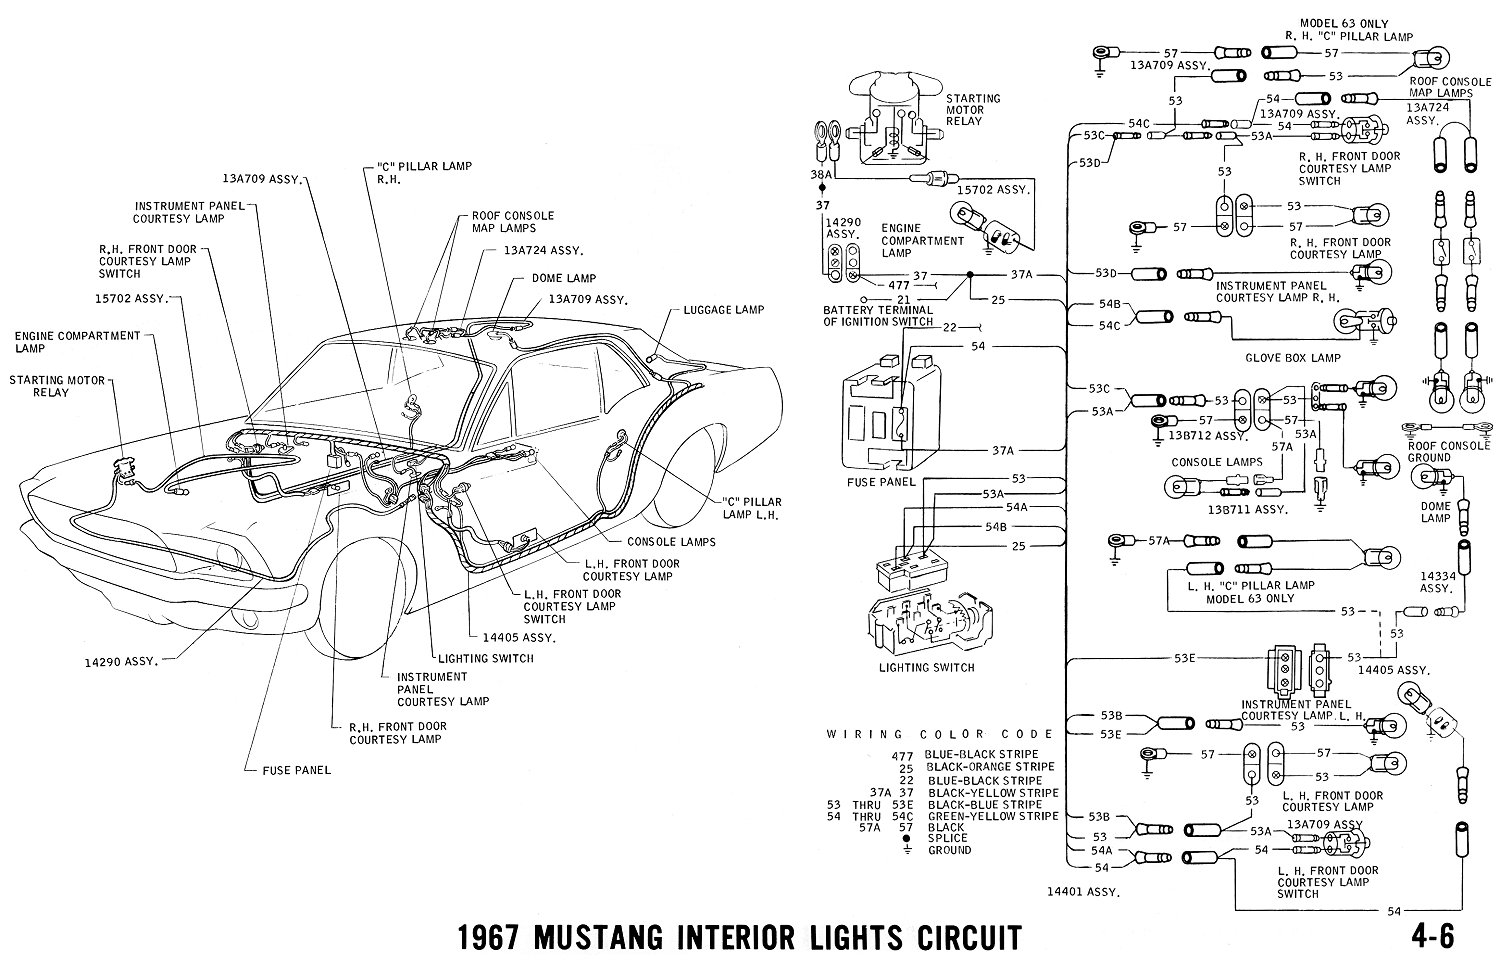 Camaro Tail Lights Diagram Wiring Wiring Diagram Images